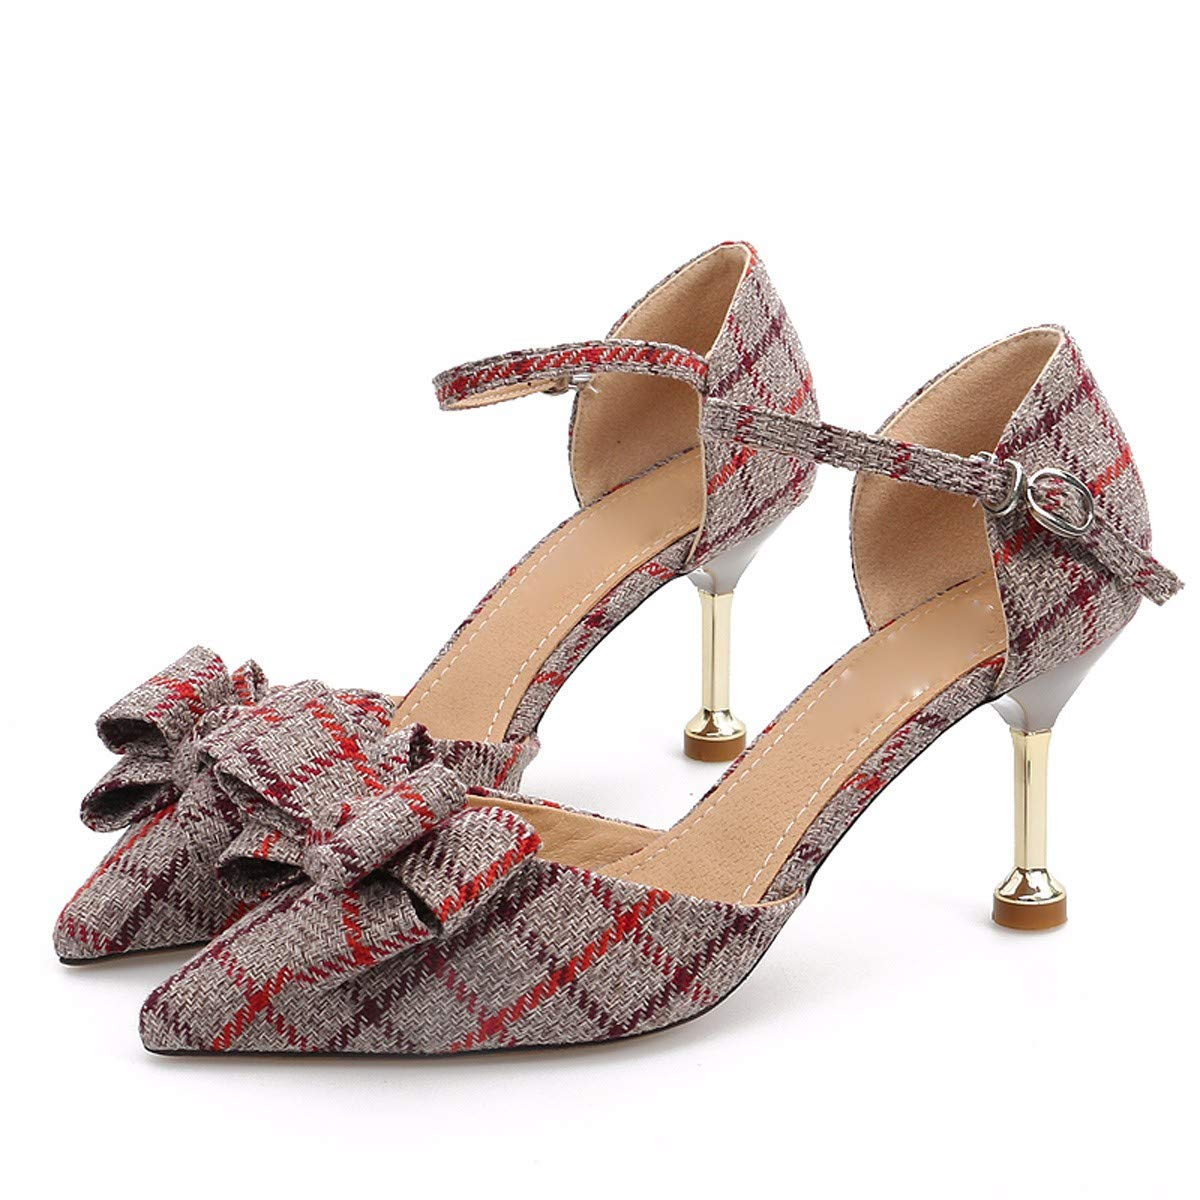 SFSYDDY-Sandals 8Cm High Heels Fine Summer Heel Pointed Fashion Bow Tie Women's Shoes Single Buckles Checked Shoes.Thirty-Nine Gules